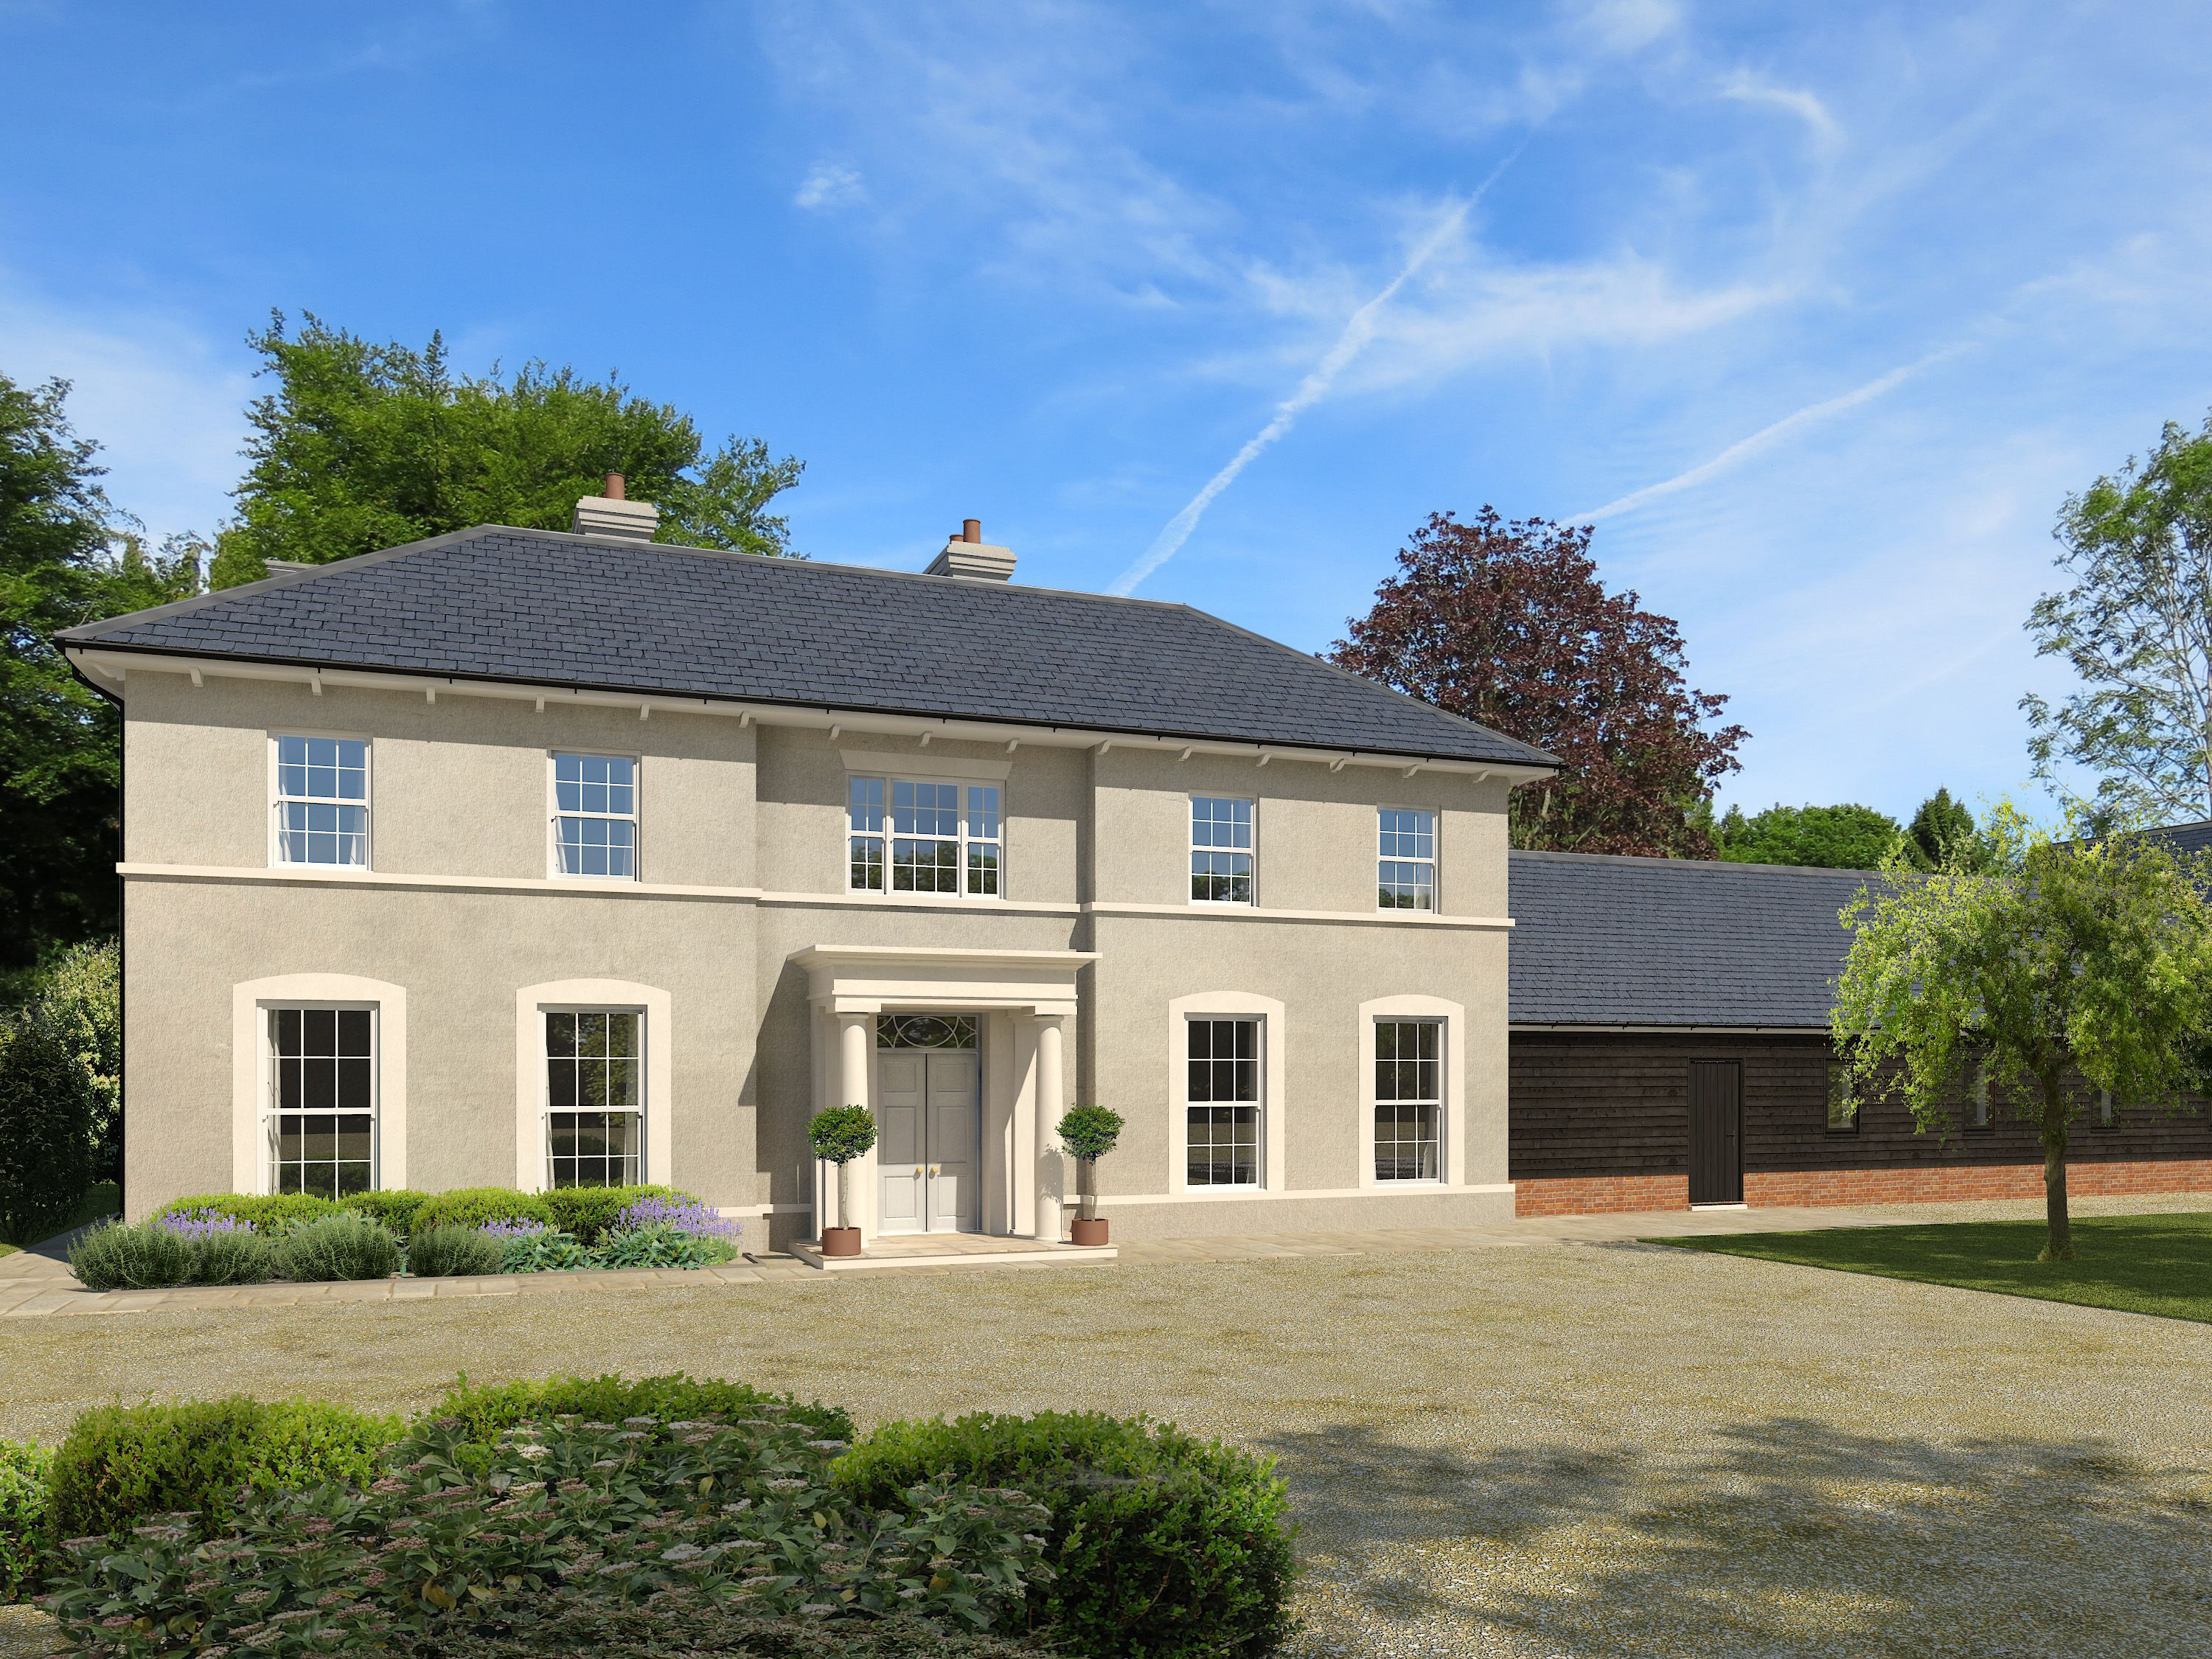 Replacement Dwelling Nr Kingsclere Hampshire Georgian Homes Architecture House Exterior